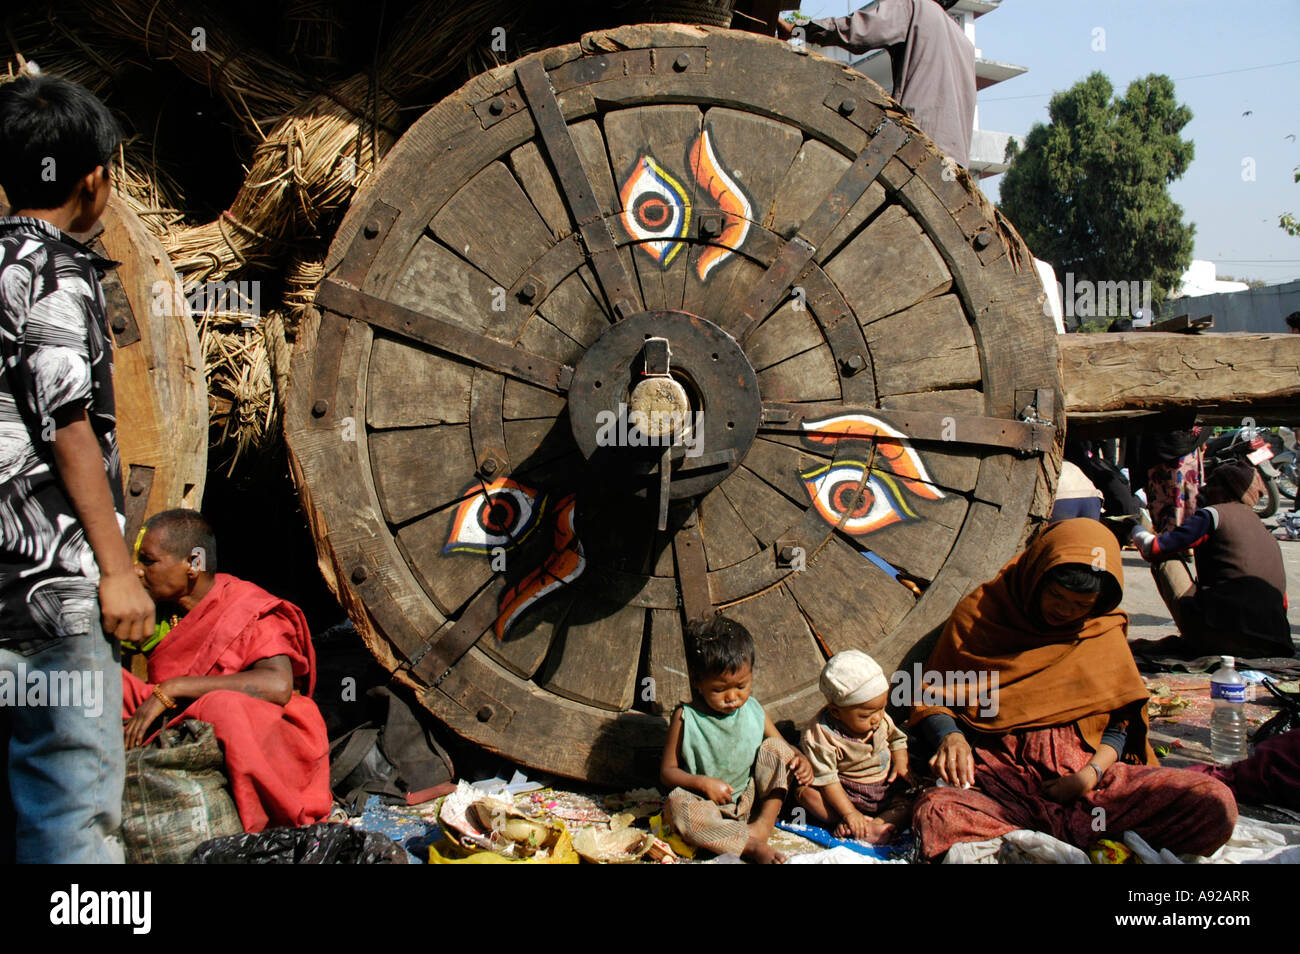 Mother with children sit at the wooden wheel of the chariot of Seto Macchendraonath Kathmandu Nepal - Stock Image